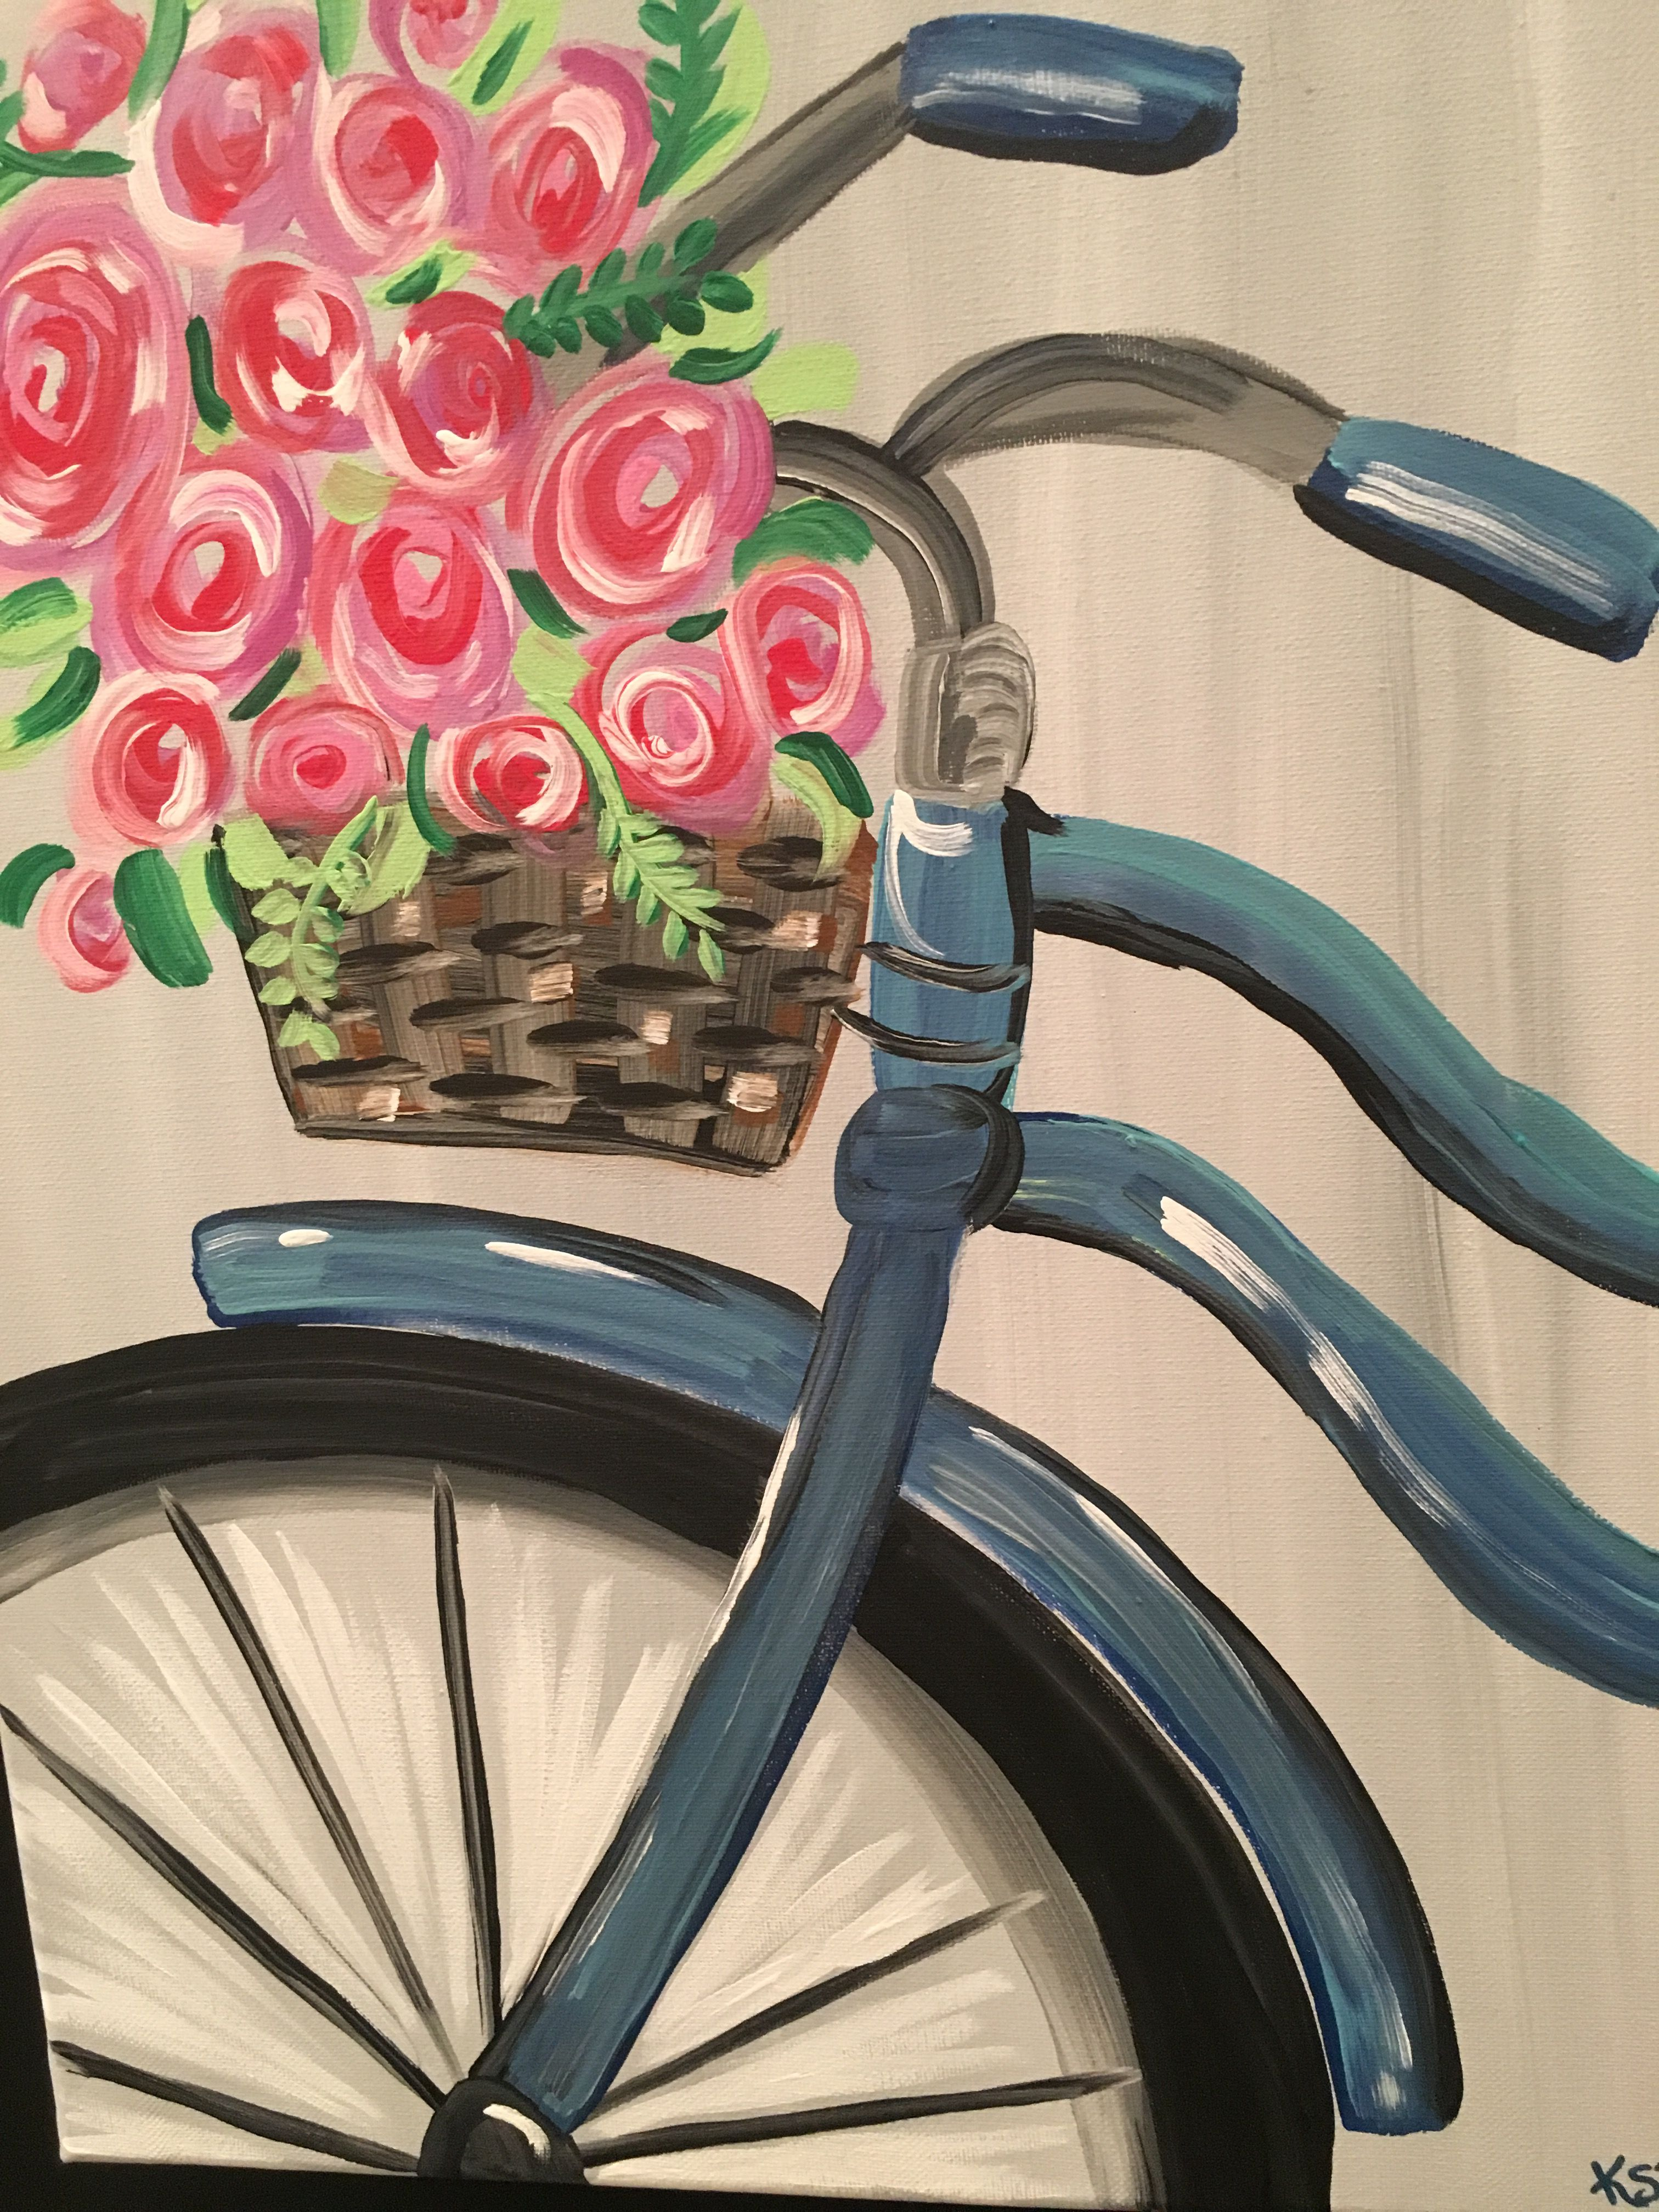 Pin By Uncorked Artist Sc On Uncorked Artist Sc Flower Painting